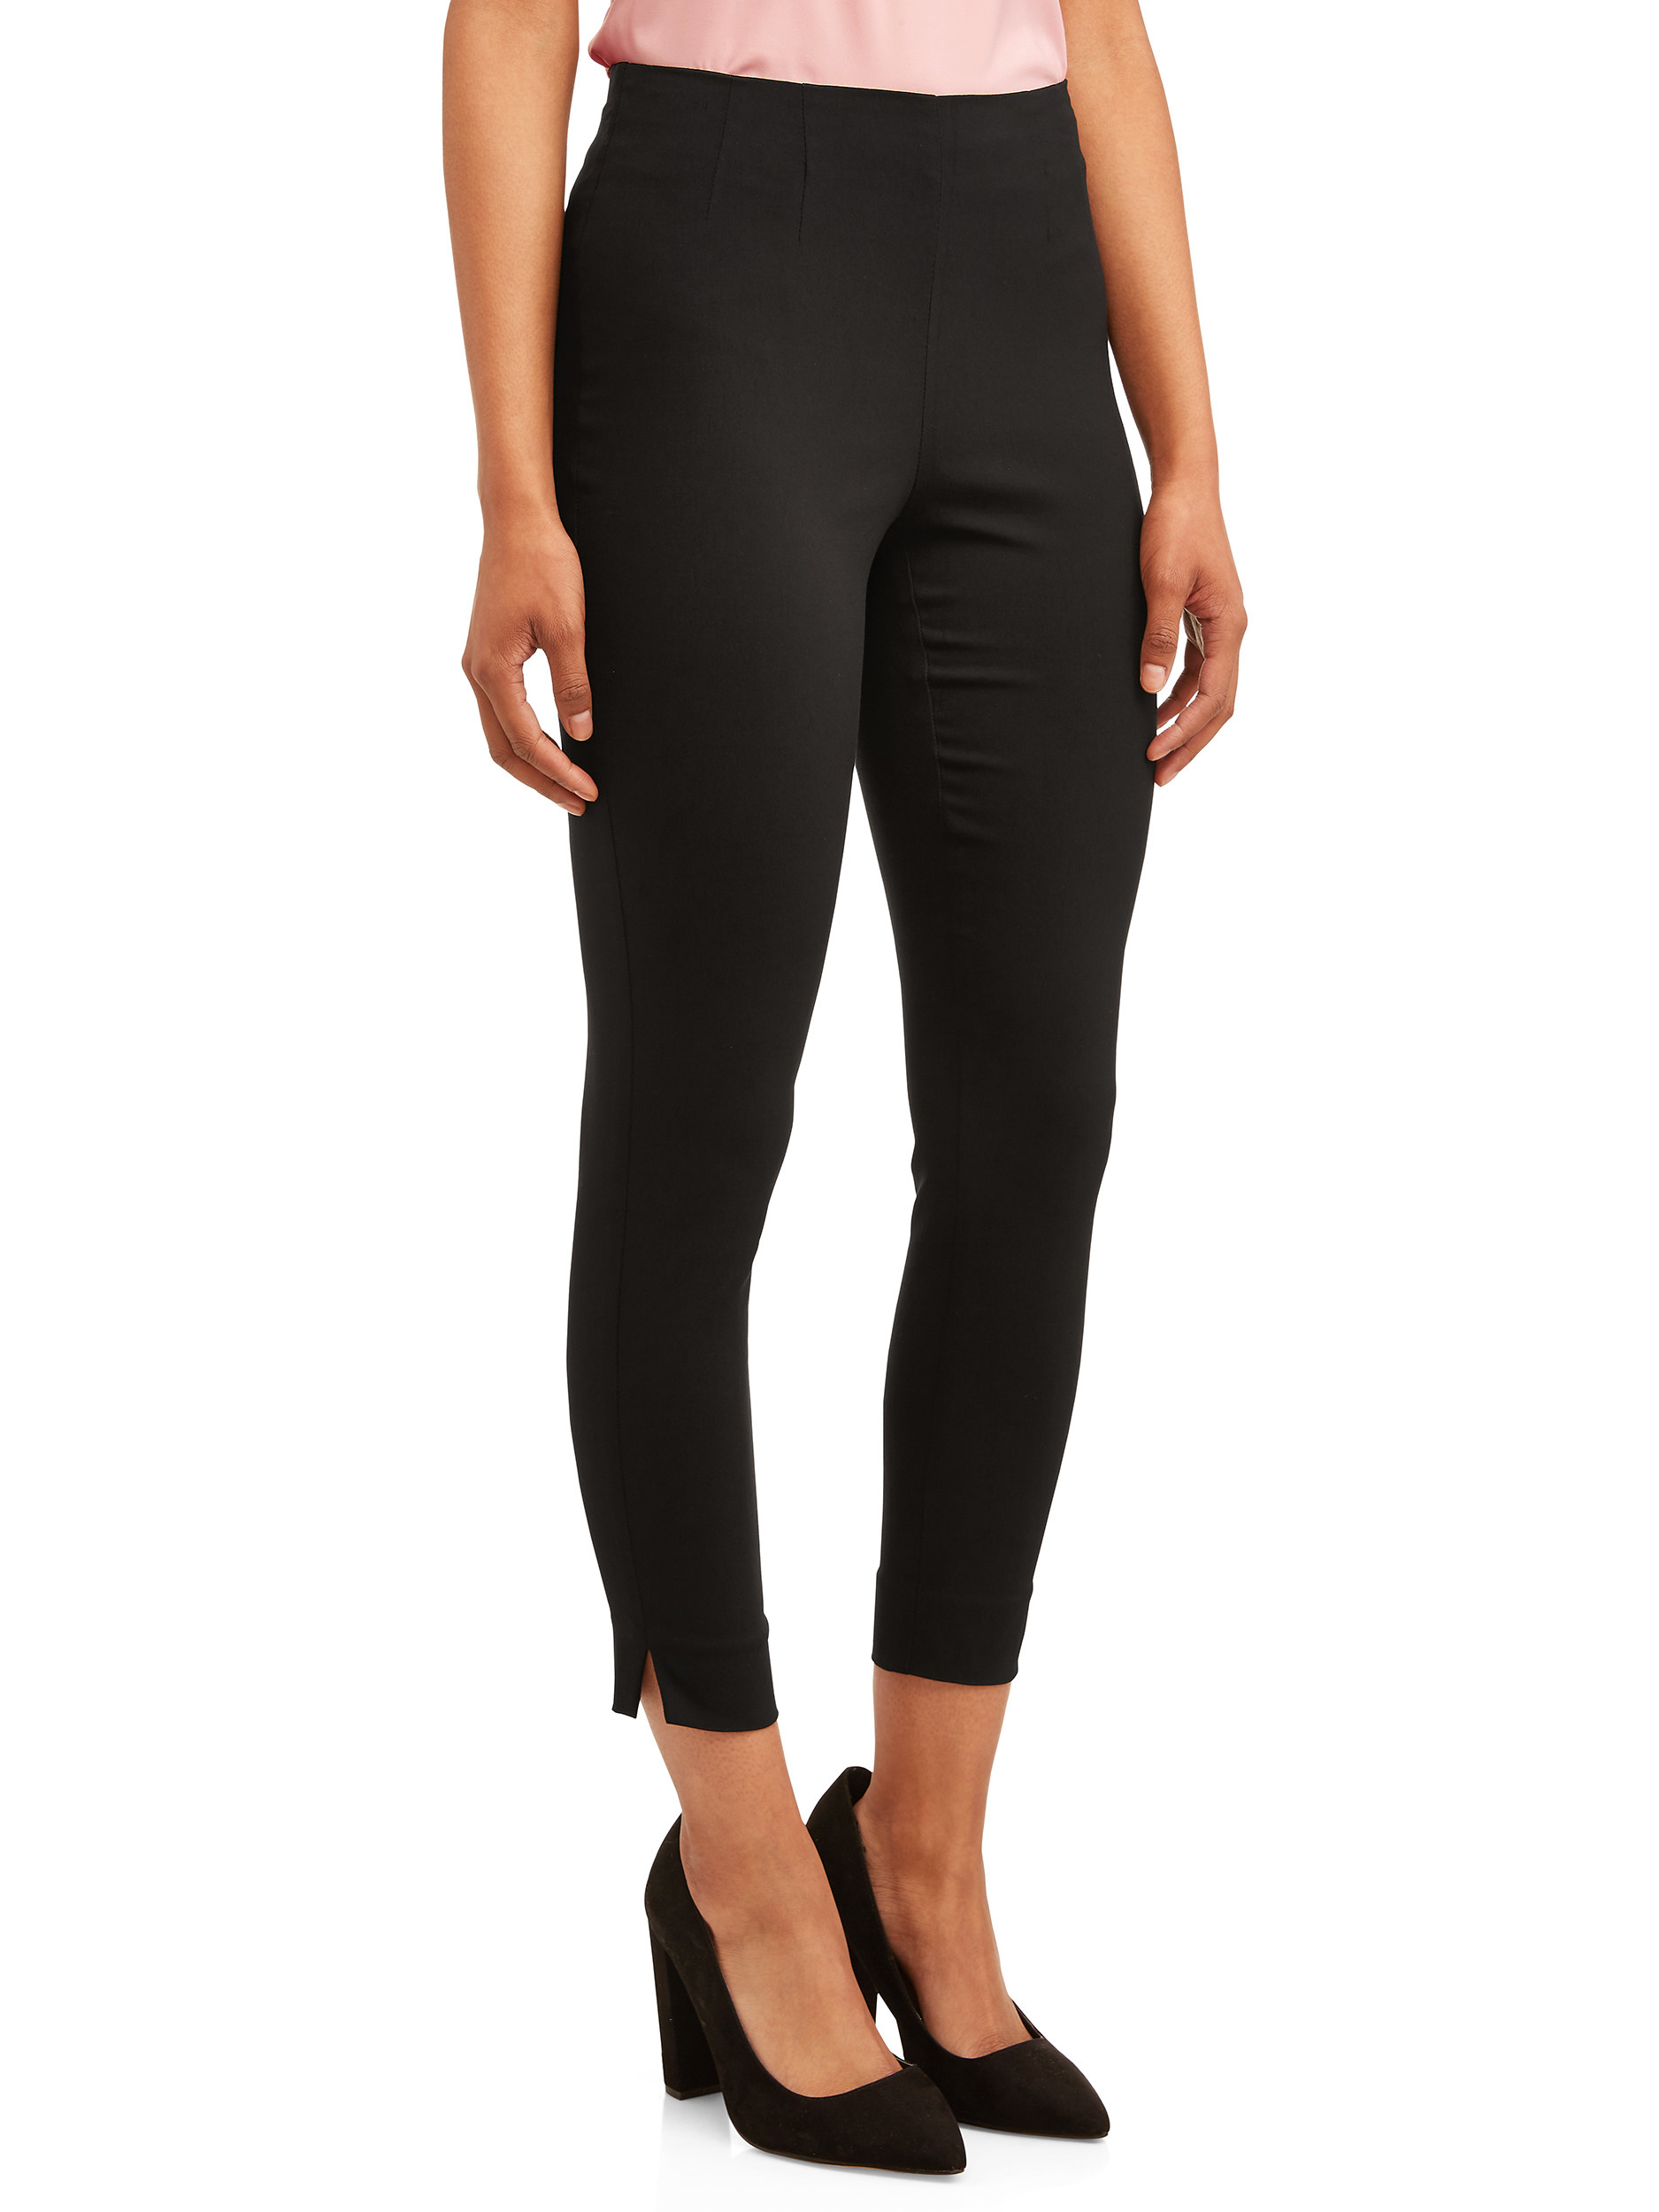 person wearing a pair of black skinny pants